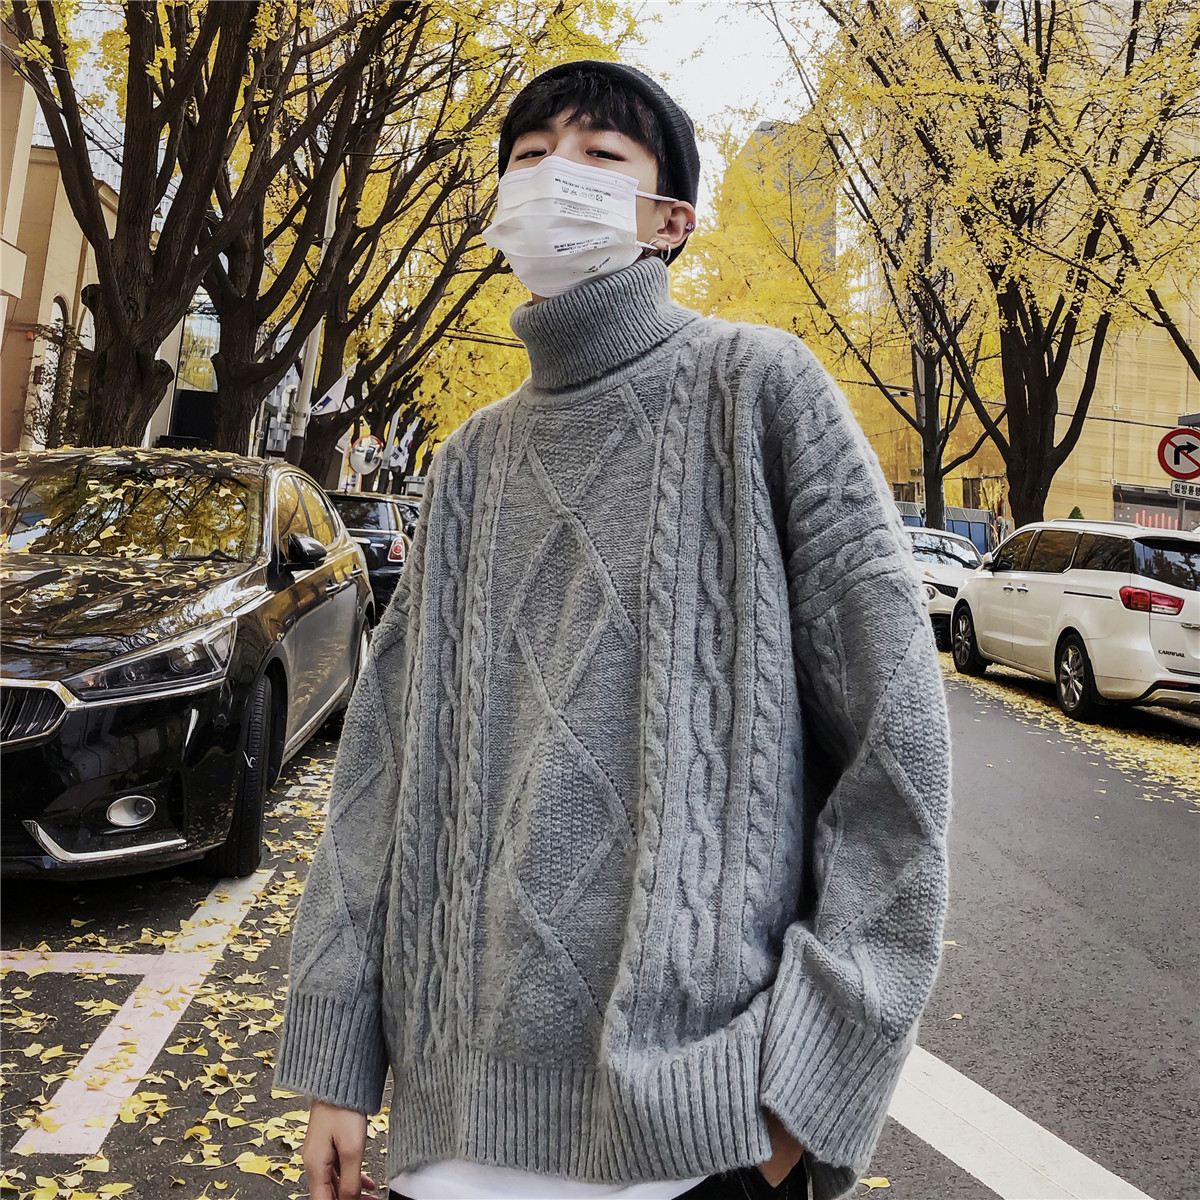 2019 Winter Men's Turtleneck Loose Knitting Embroidered Woolen Pullover Casual Coats In Warm Grey/brown/black Cashmere Sweaters